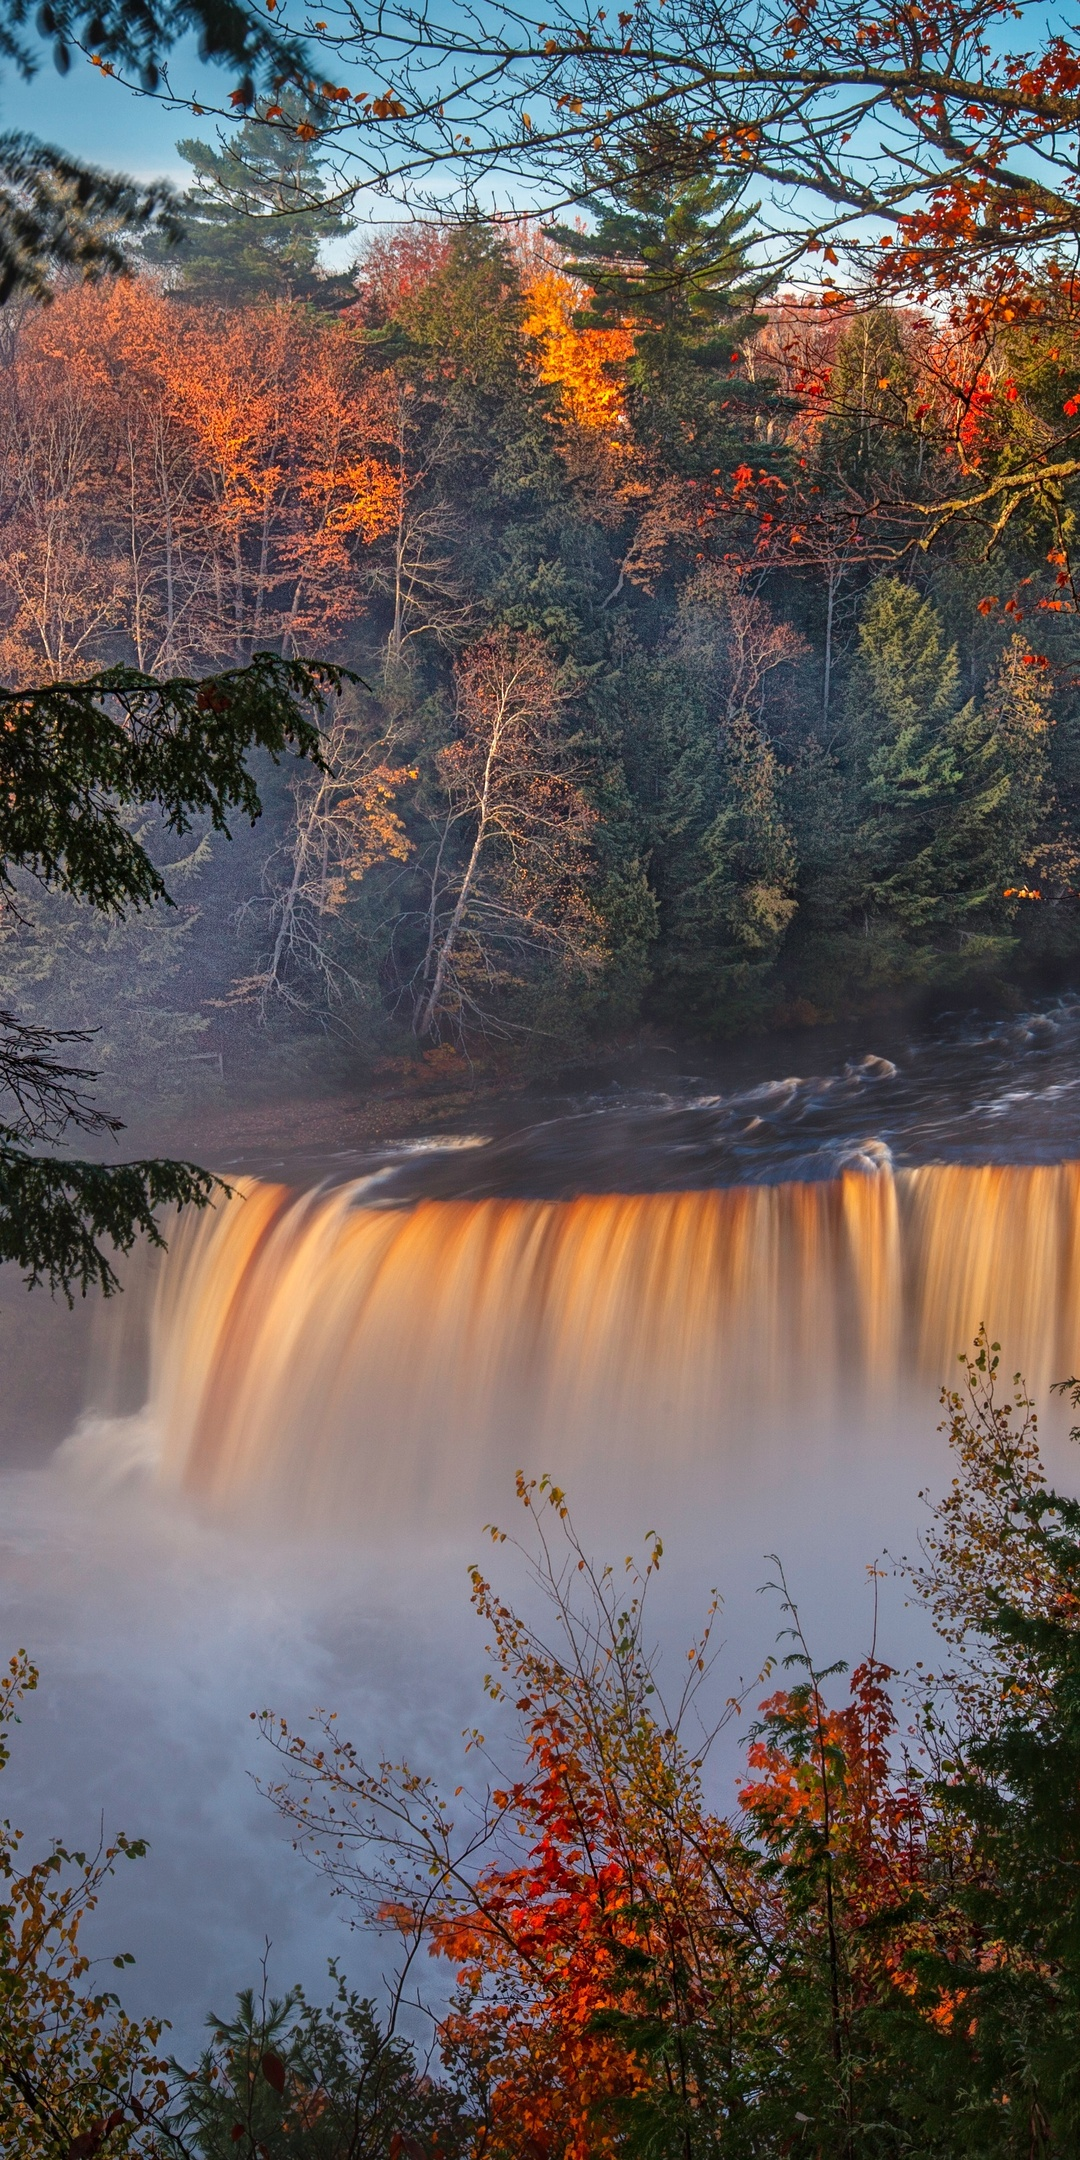 autumn-waterfall-forest-fall-5k-gu.jpg